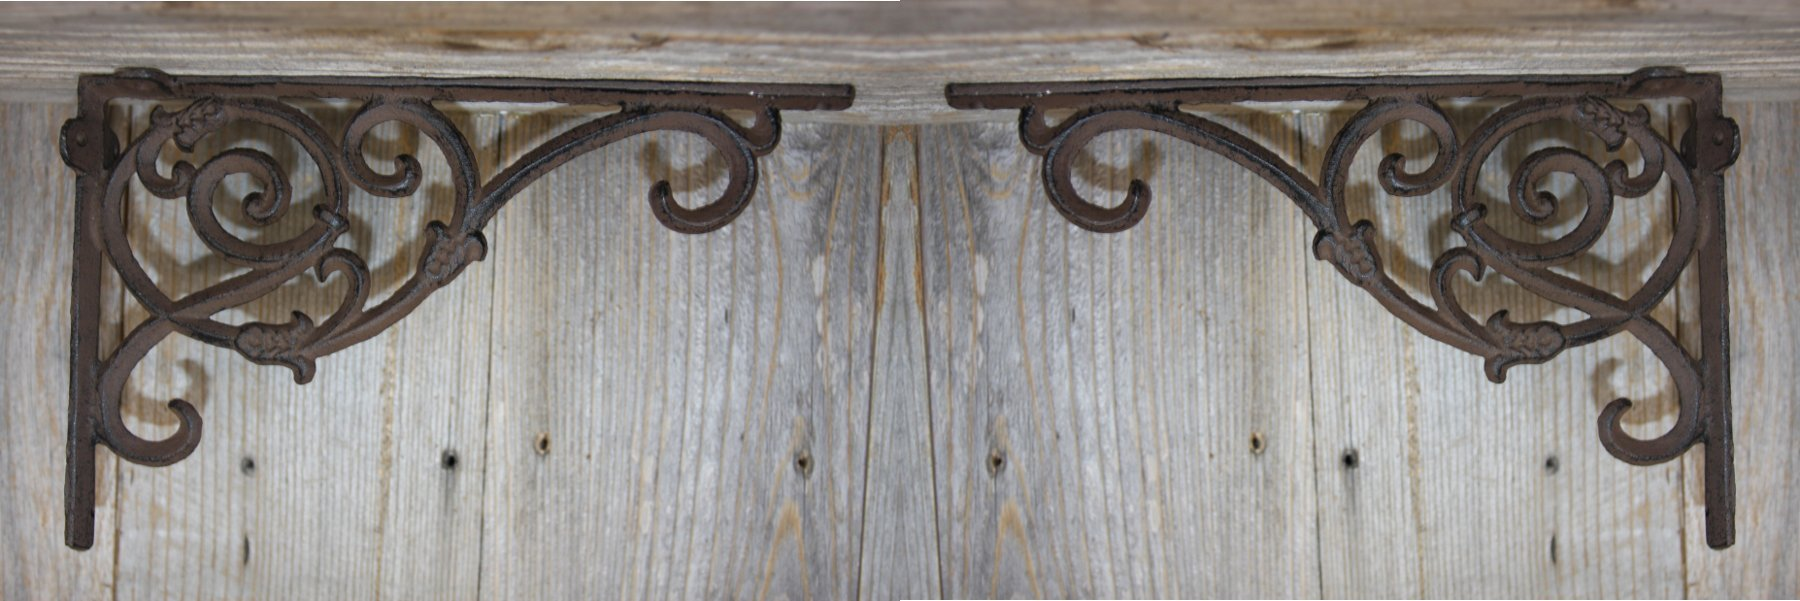 Old Fashion Vintage-style Entryway Door Corner Shelf Brackets Solid Cast Iron 9 1/4 inches, Set of 2, B-62